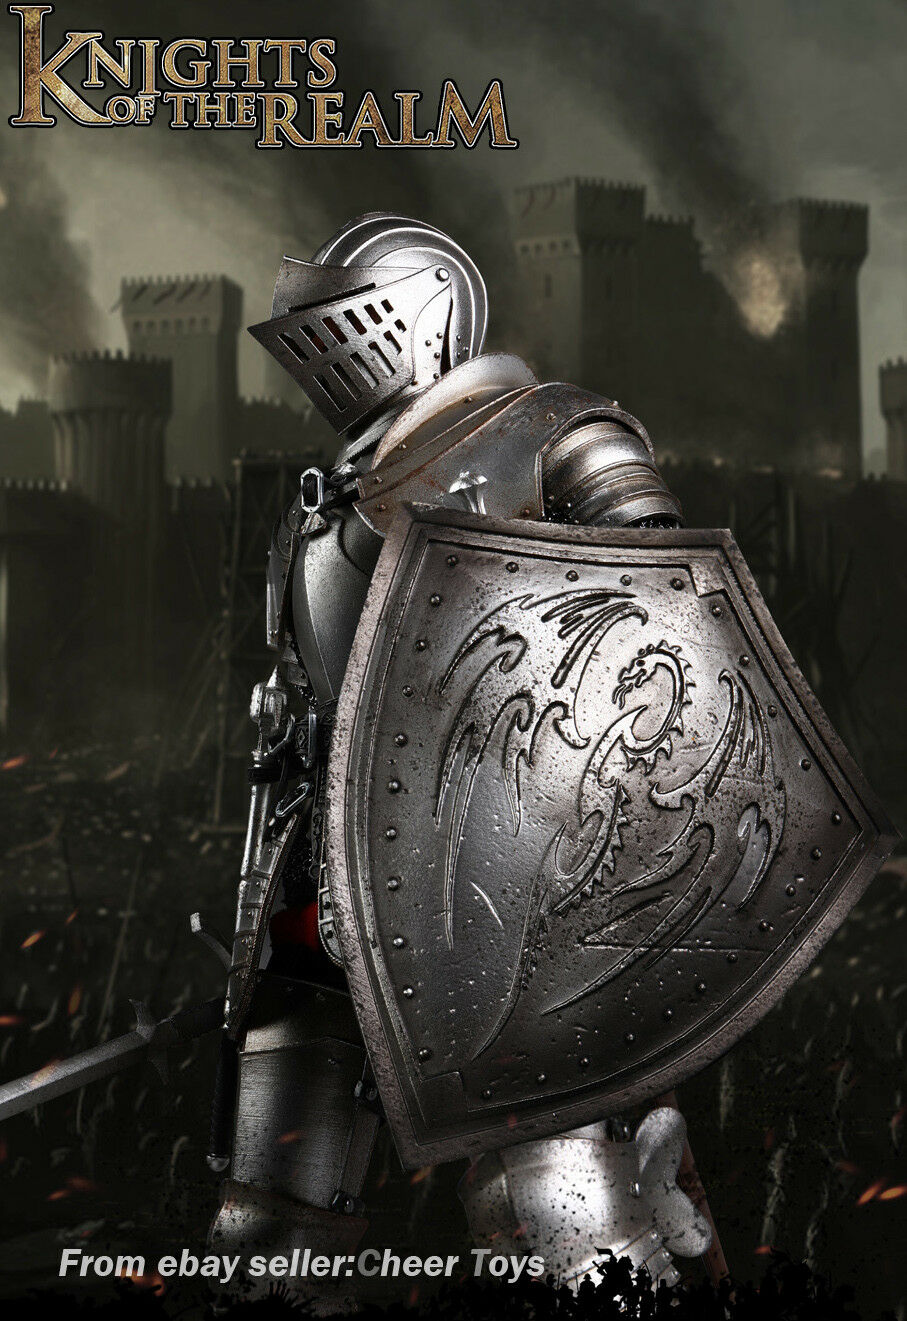 COOMODEL NO.SE038 Die Cast Alloy Alloy Alloy 1 6 Series Of Empires Knights Of The Realm 7be735